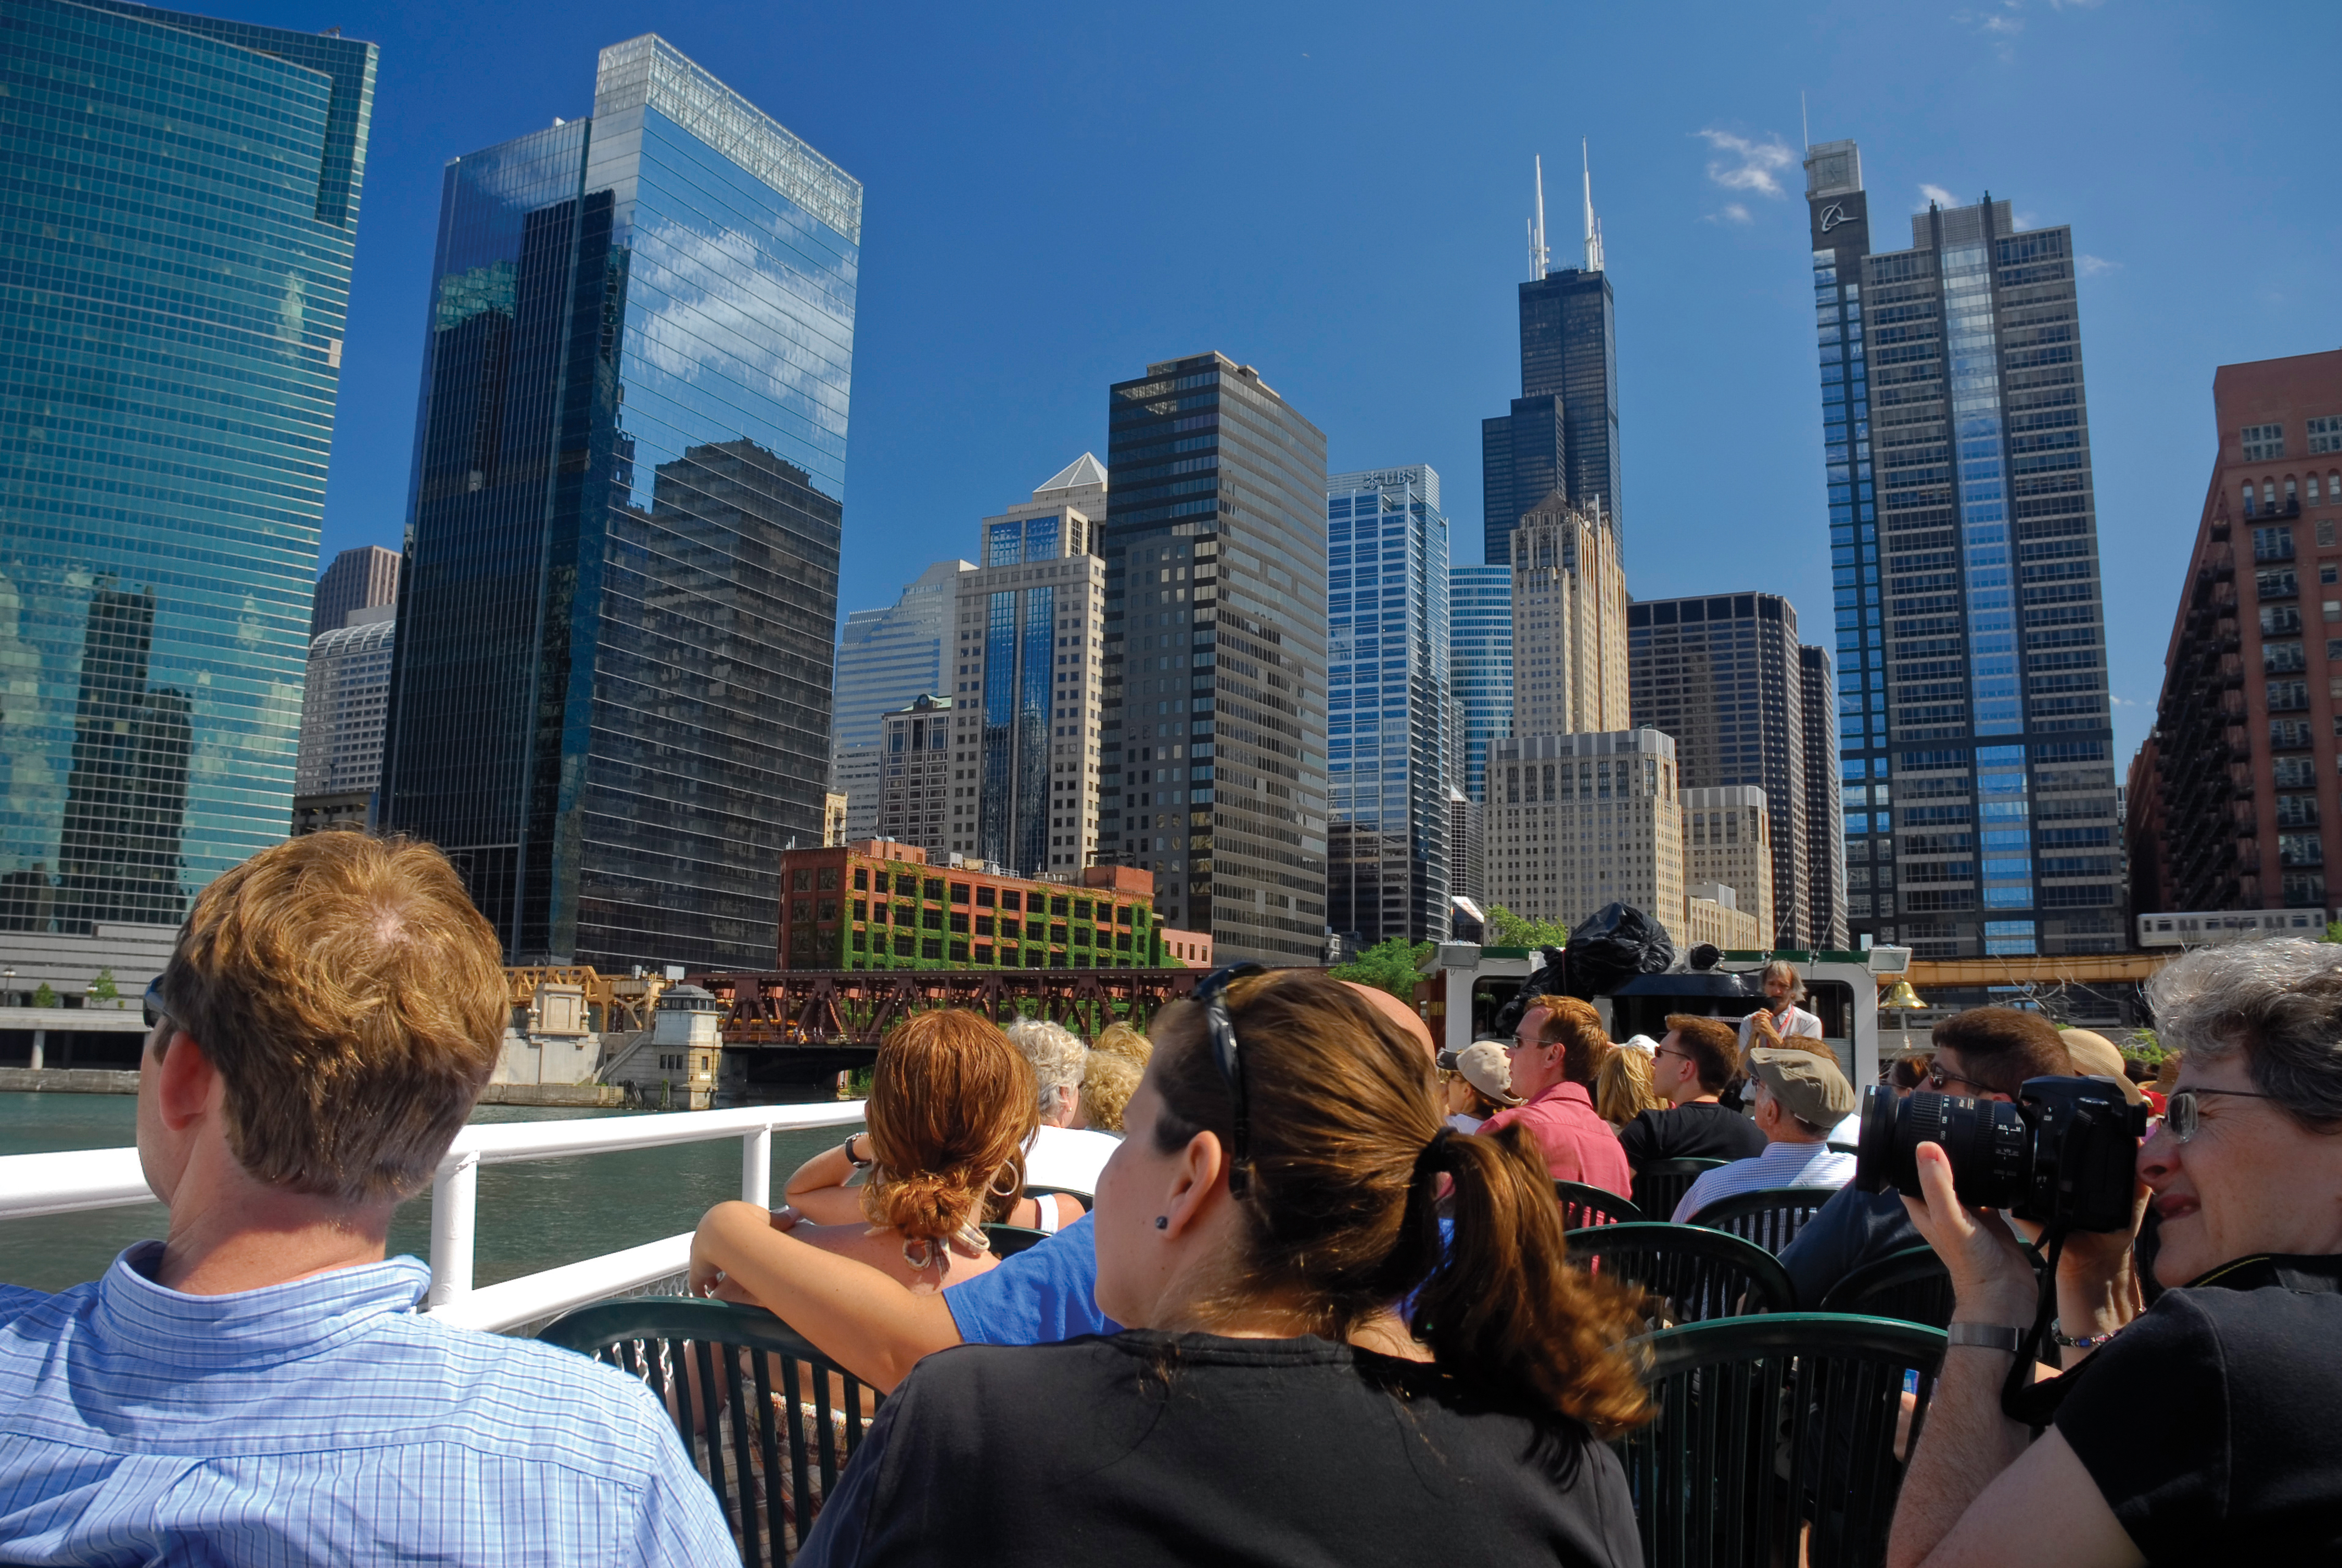 An architecture boat tour with First Lady Cruises (Choose Chicago/PA)